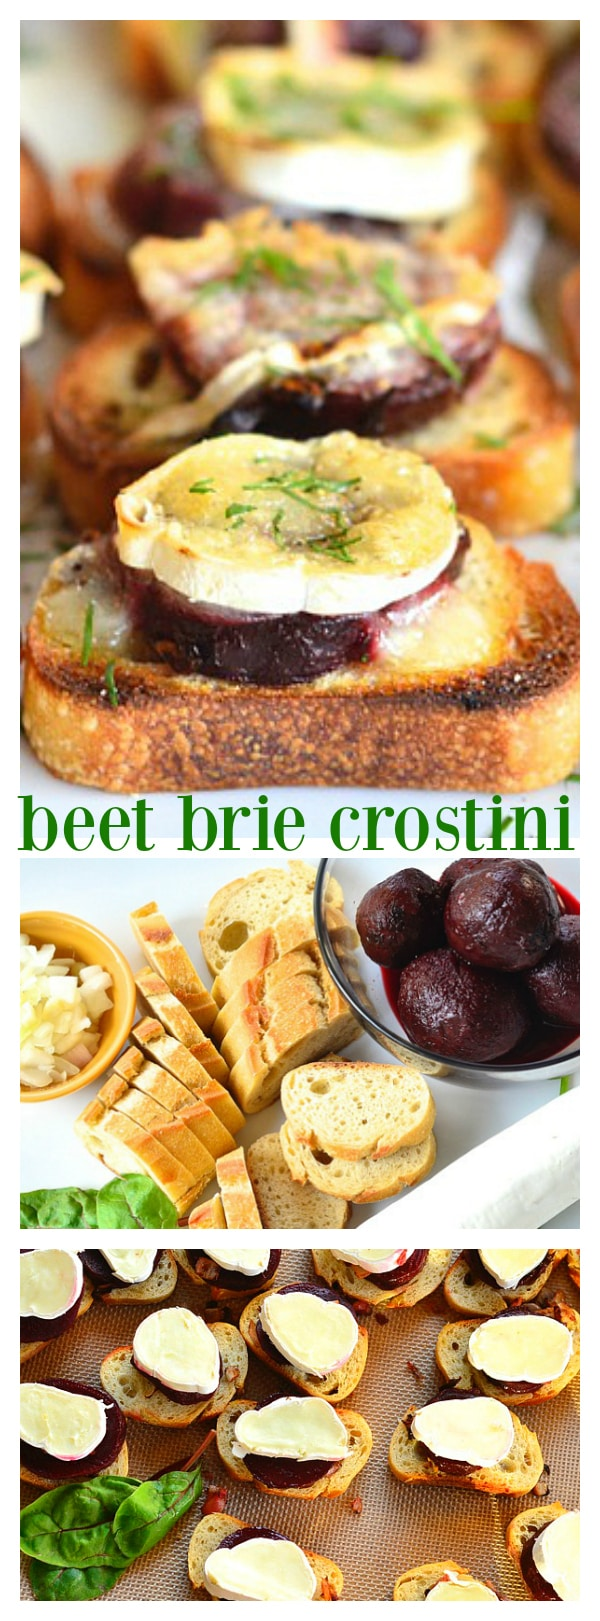 Beet Brie Crostini for spring or summer entertaining!